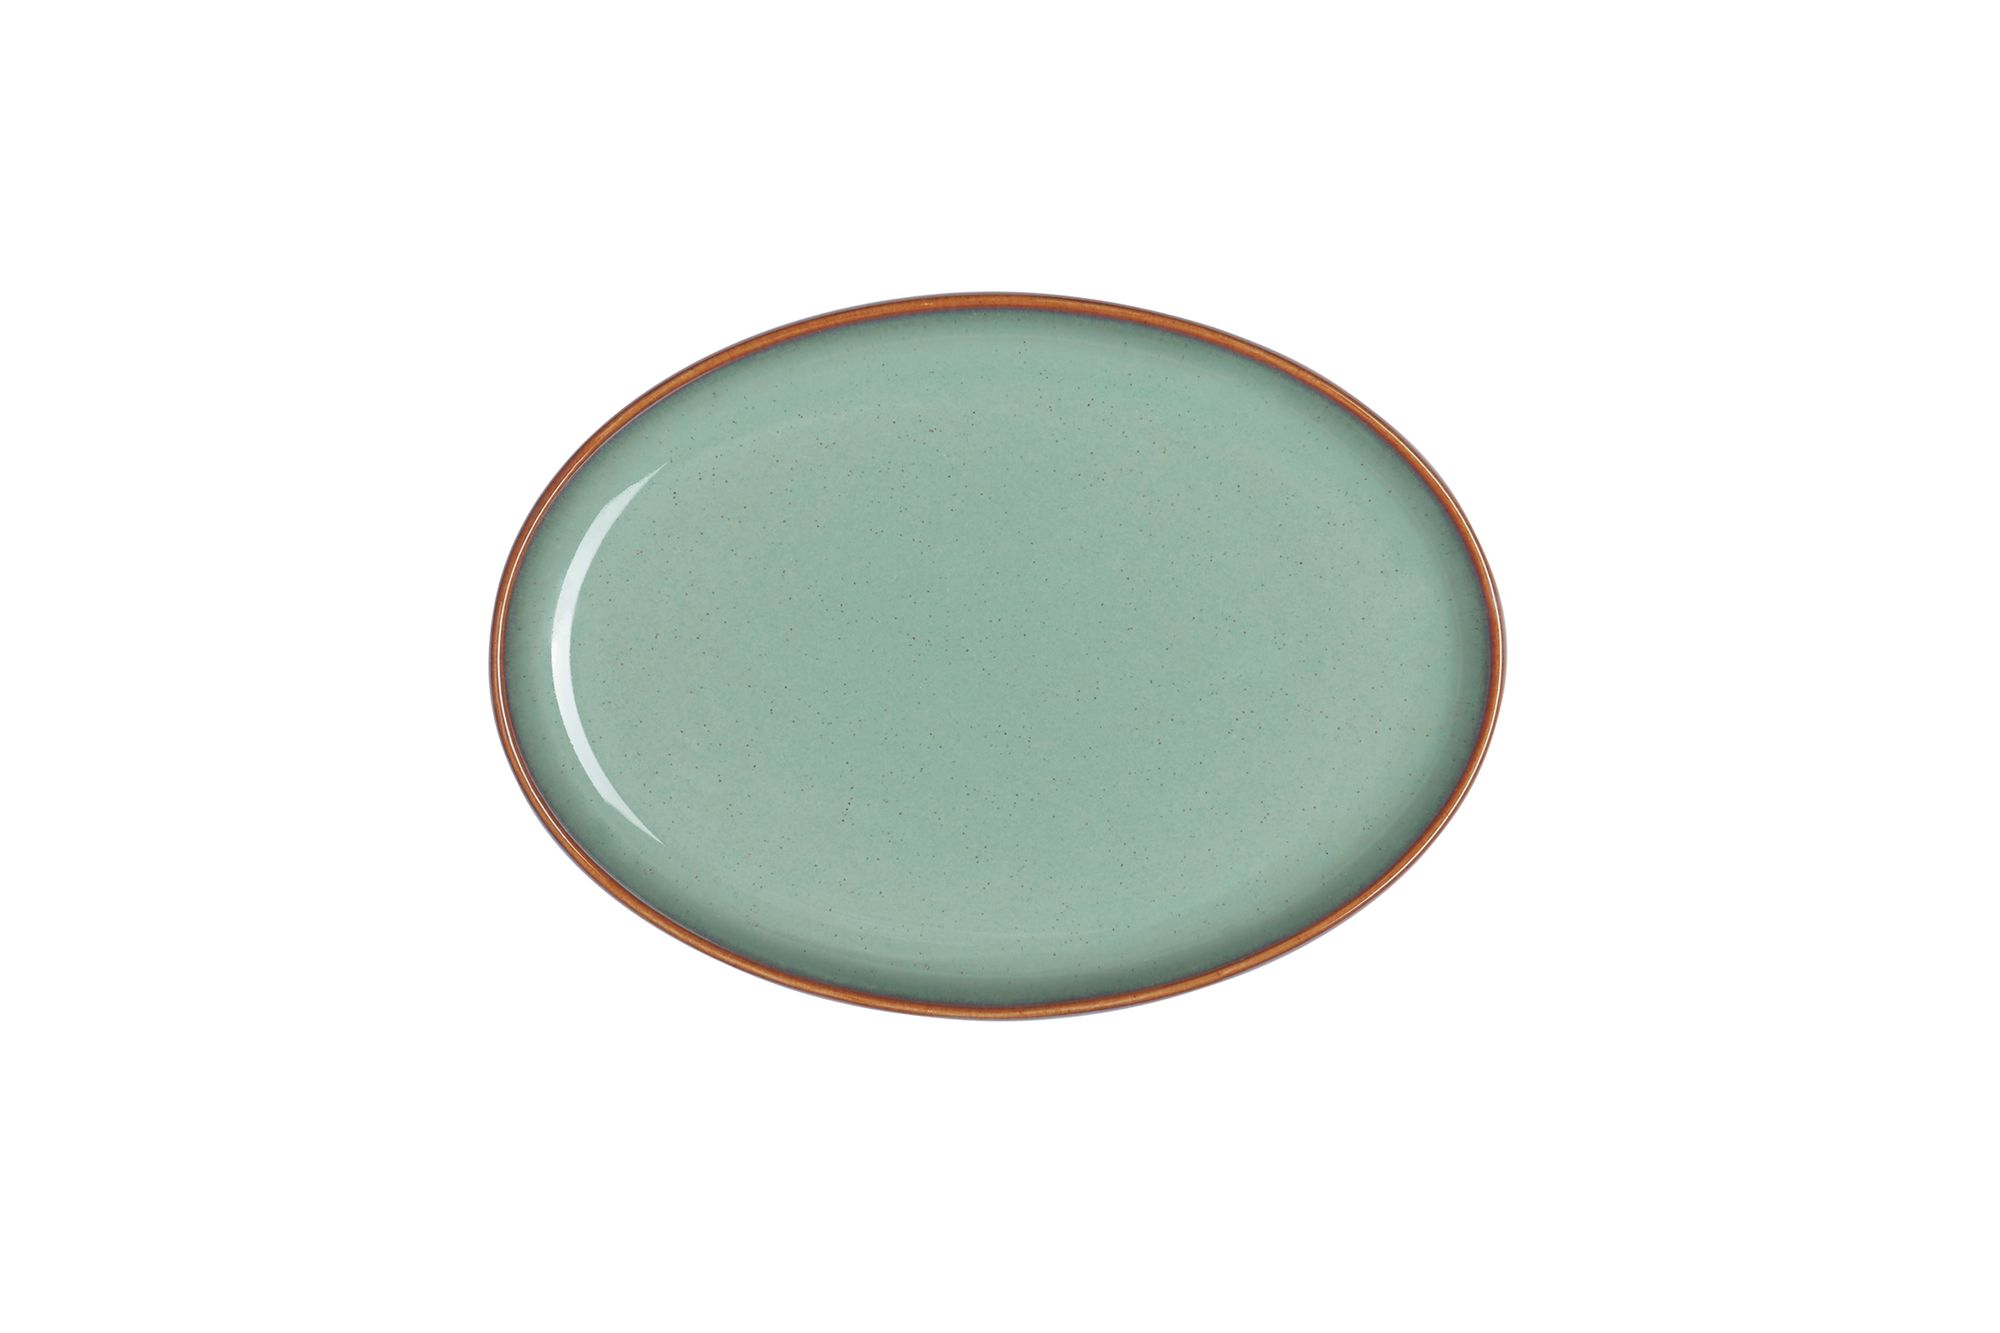 "Denby Regency Green Serving Tray Small Oval Tray 19 x 14"" thumb 1"